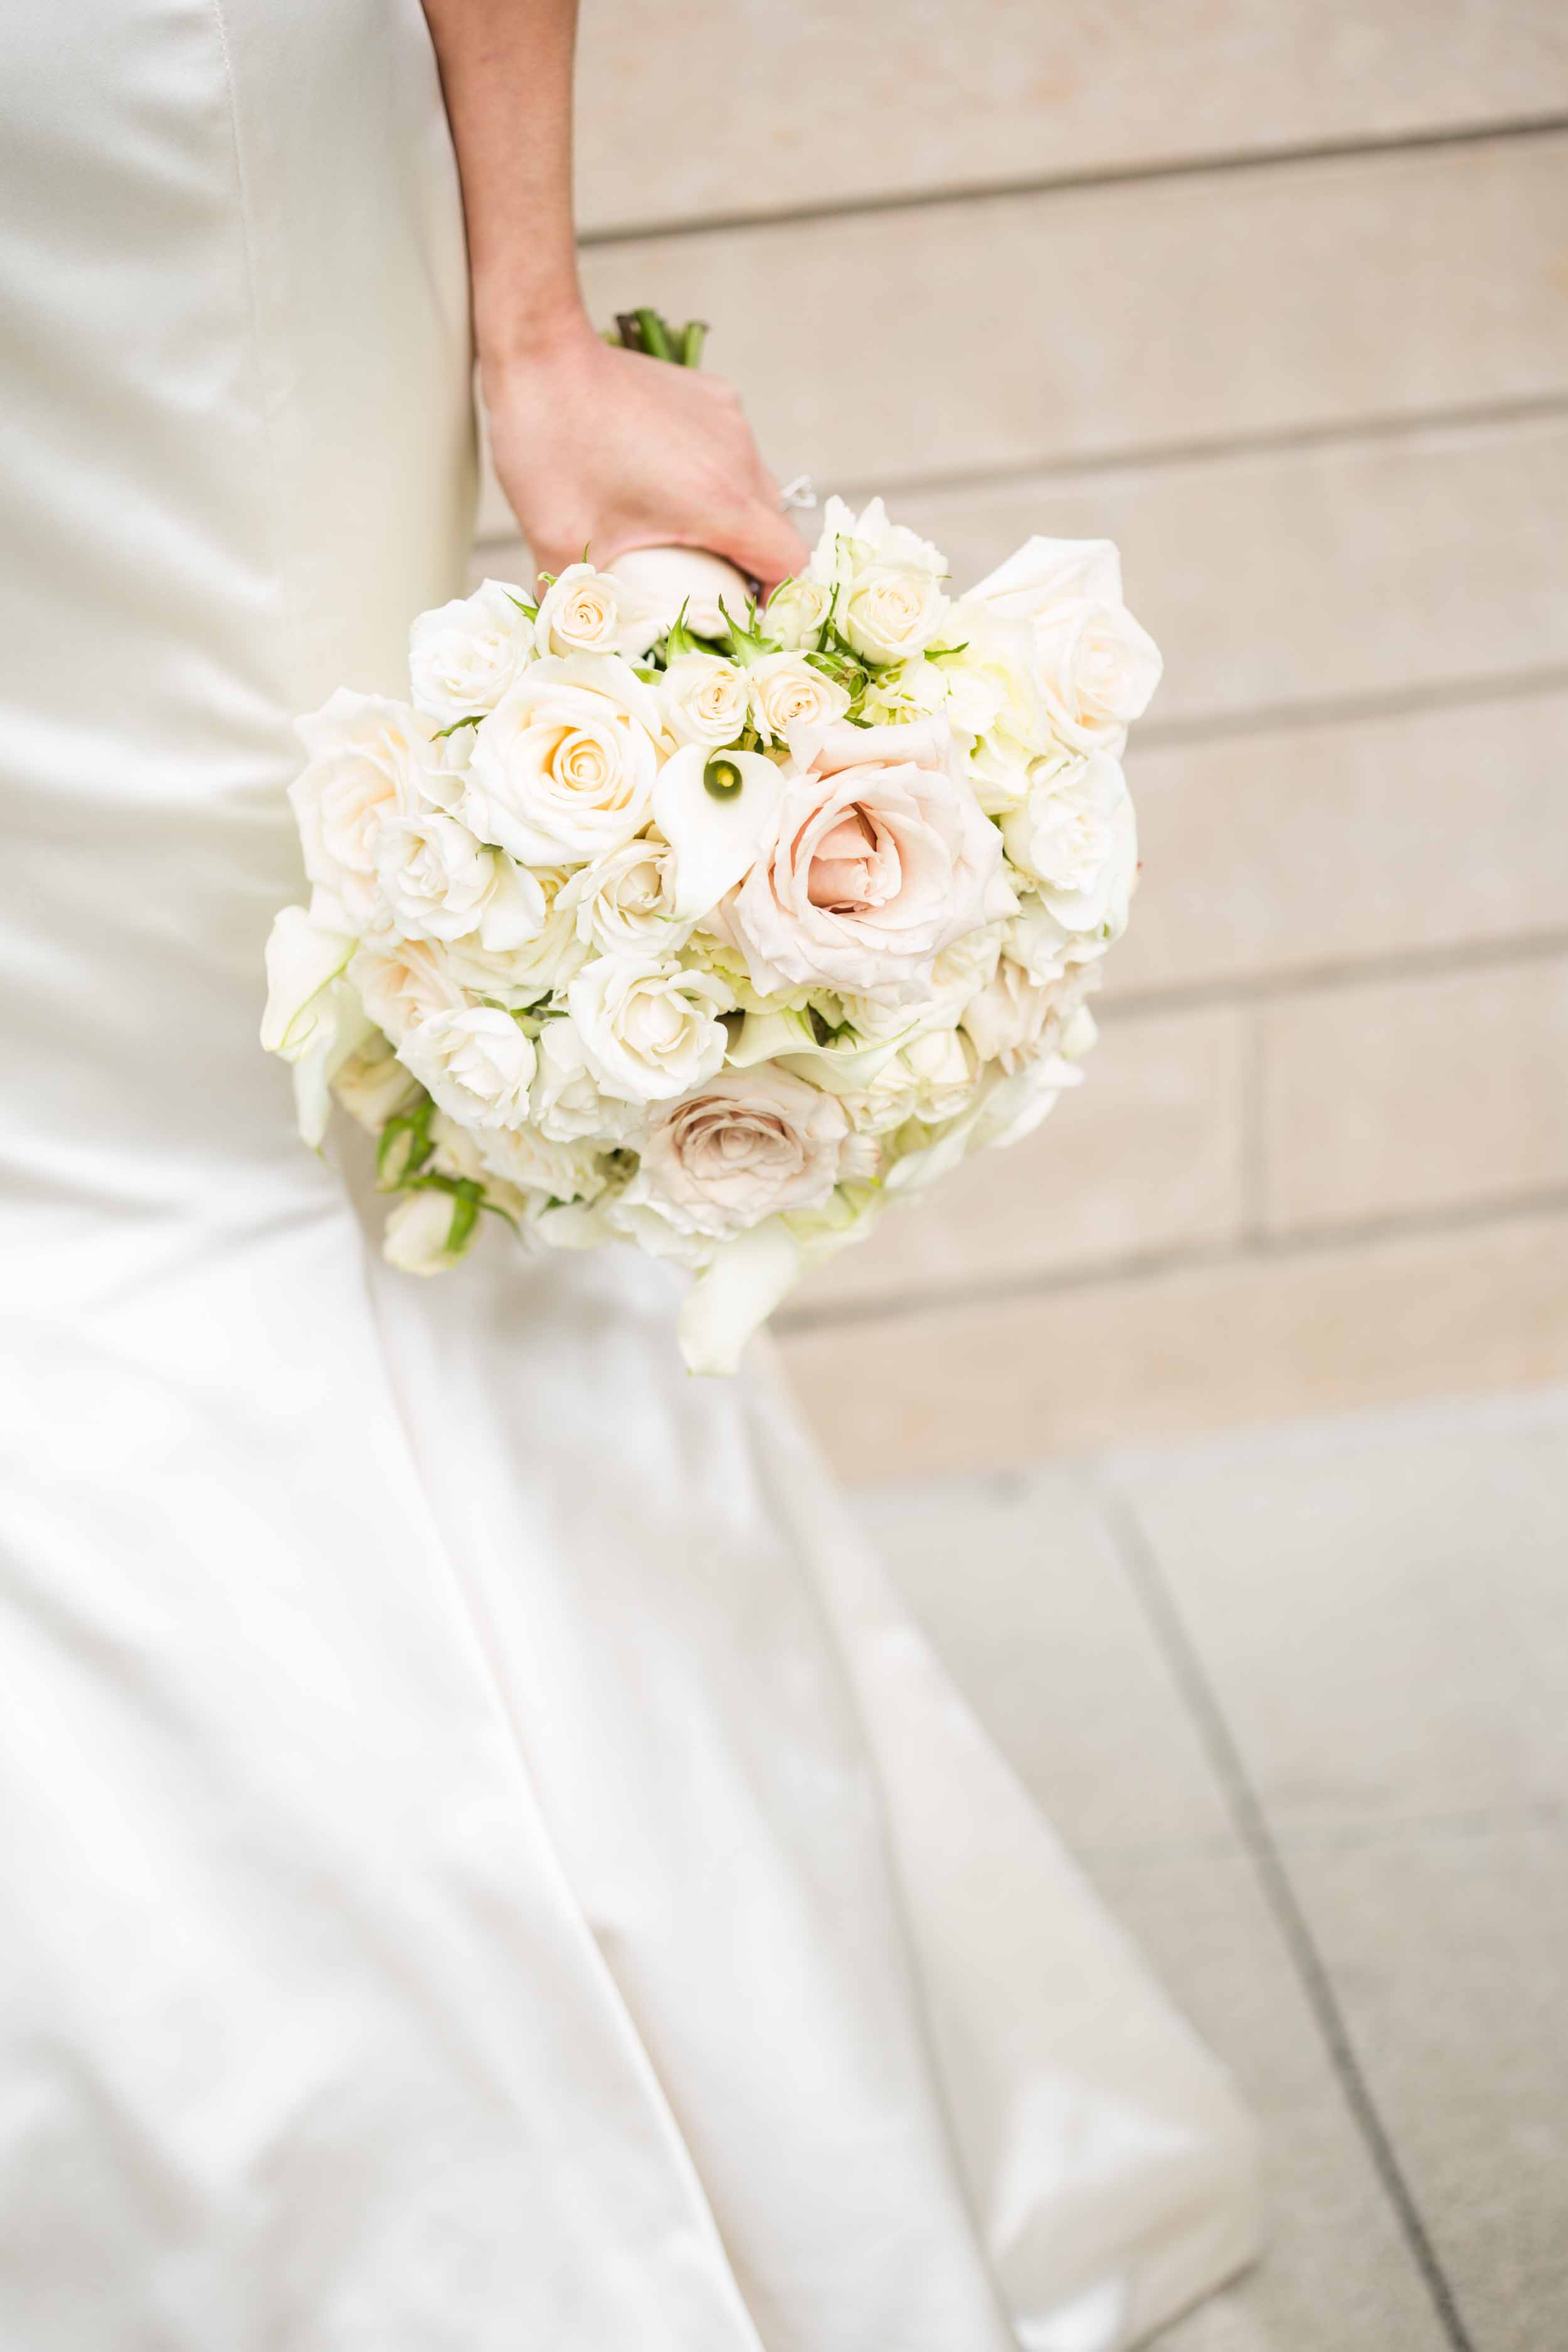 Tight, round bridal bouquet of all white and cream flowers: roses, spray roses, and garden roses - Flora Nova Design Seattle